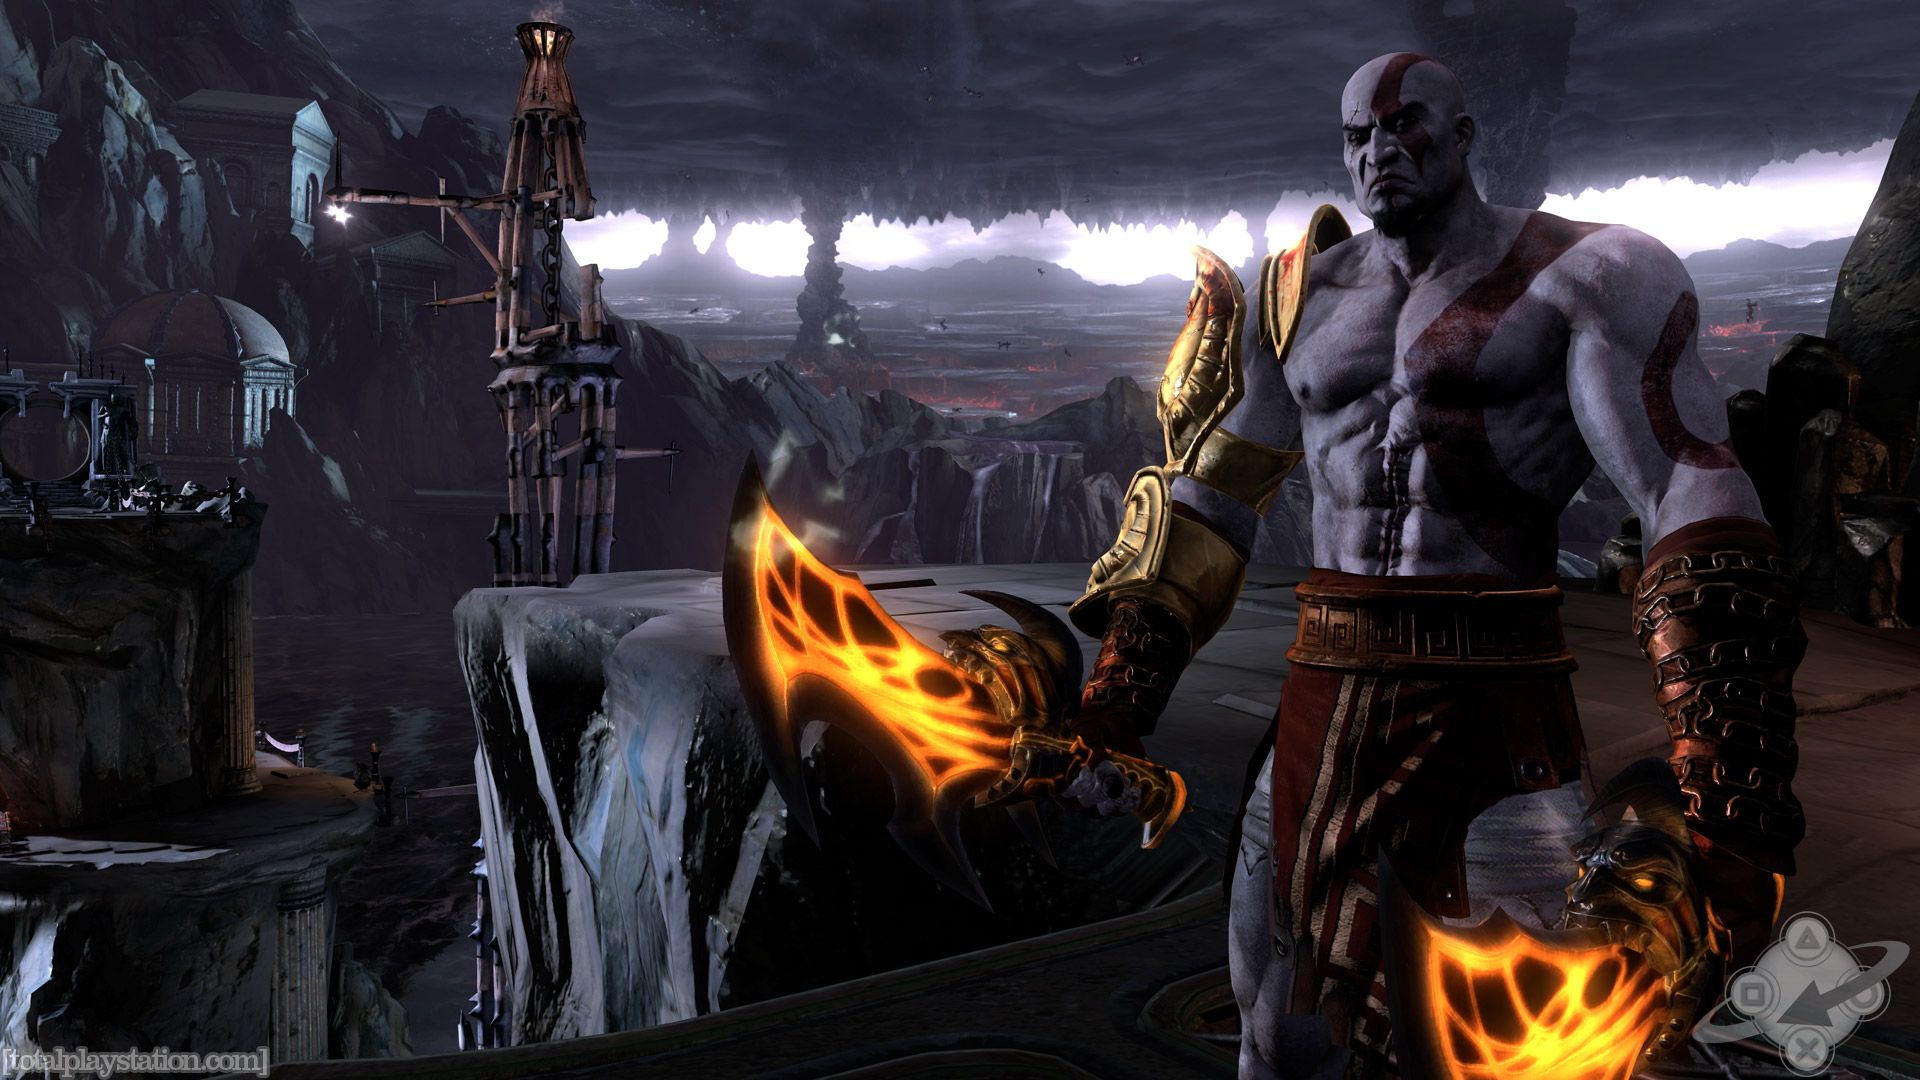 God War Wallpaper Desktop Godofwar3 Media Wallpapers God Of War